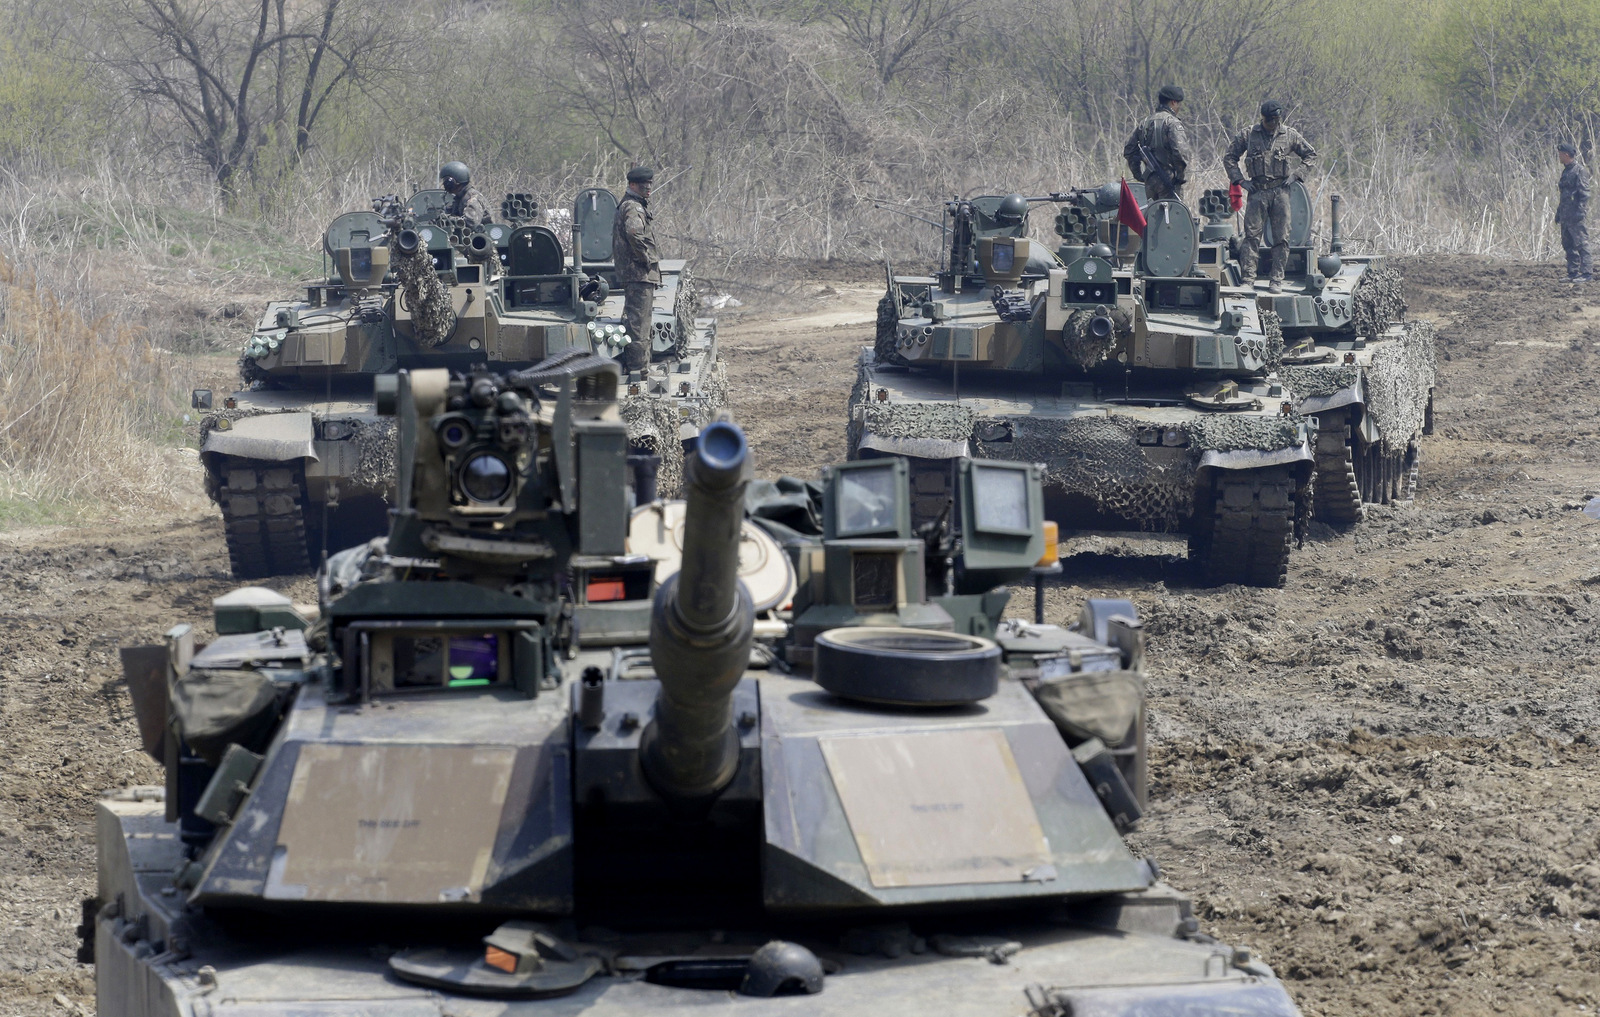 South Korean army soldiers stand on their tanks during a joint military exercise between the U.S. and South Korea in Paju, near the border with North Korea, South Korea, April 15, 2017.  (AP/Ahn Young-joon)